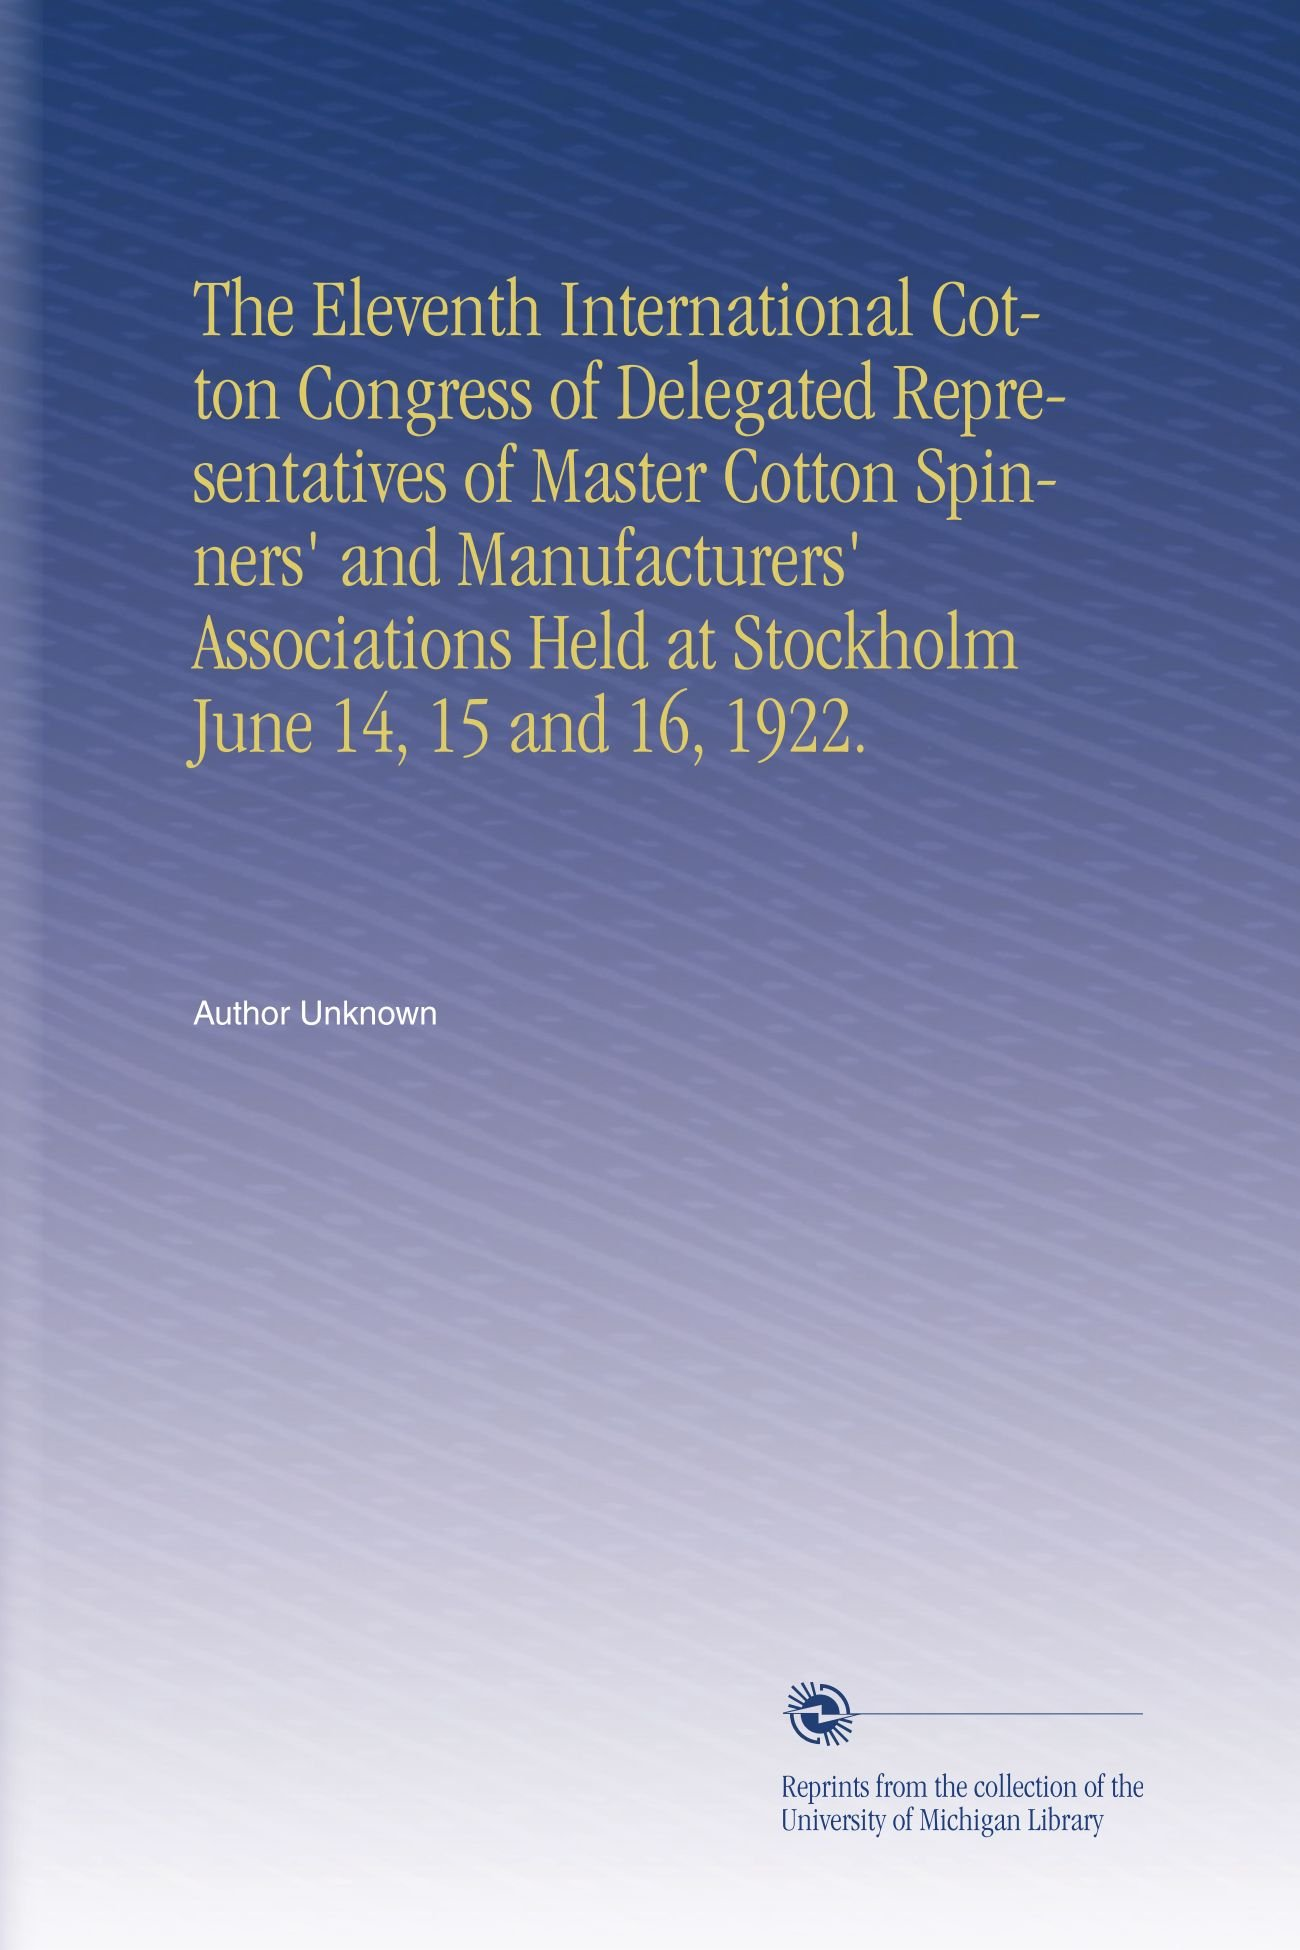 The Eleventh International Cotton Congress of Delegated Representatives of Master Cotton Spinners' and Manufacturers' Associations Held at Stockholm June 14, 15 and 16, 1922. pdf